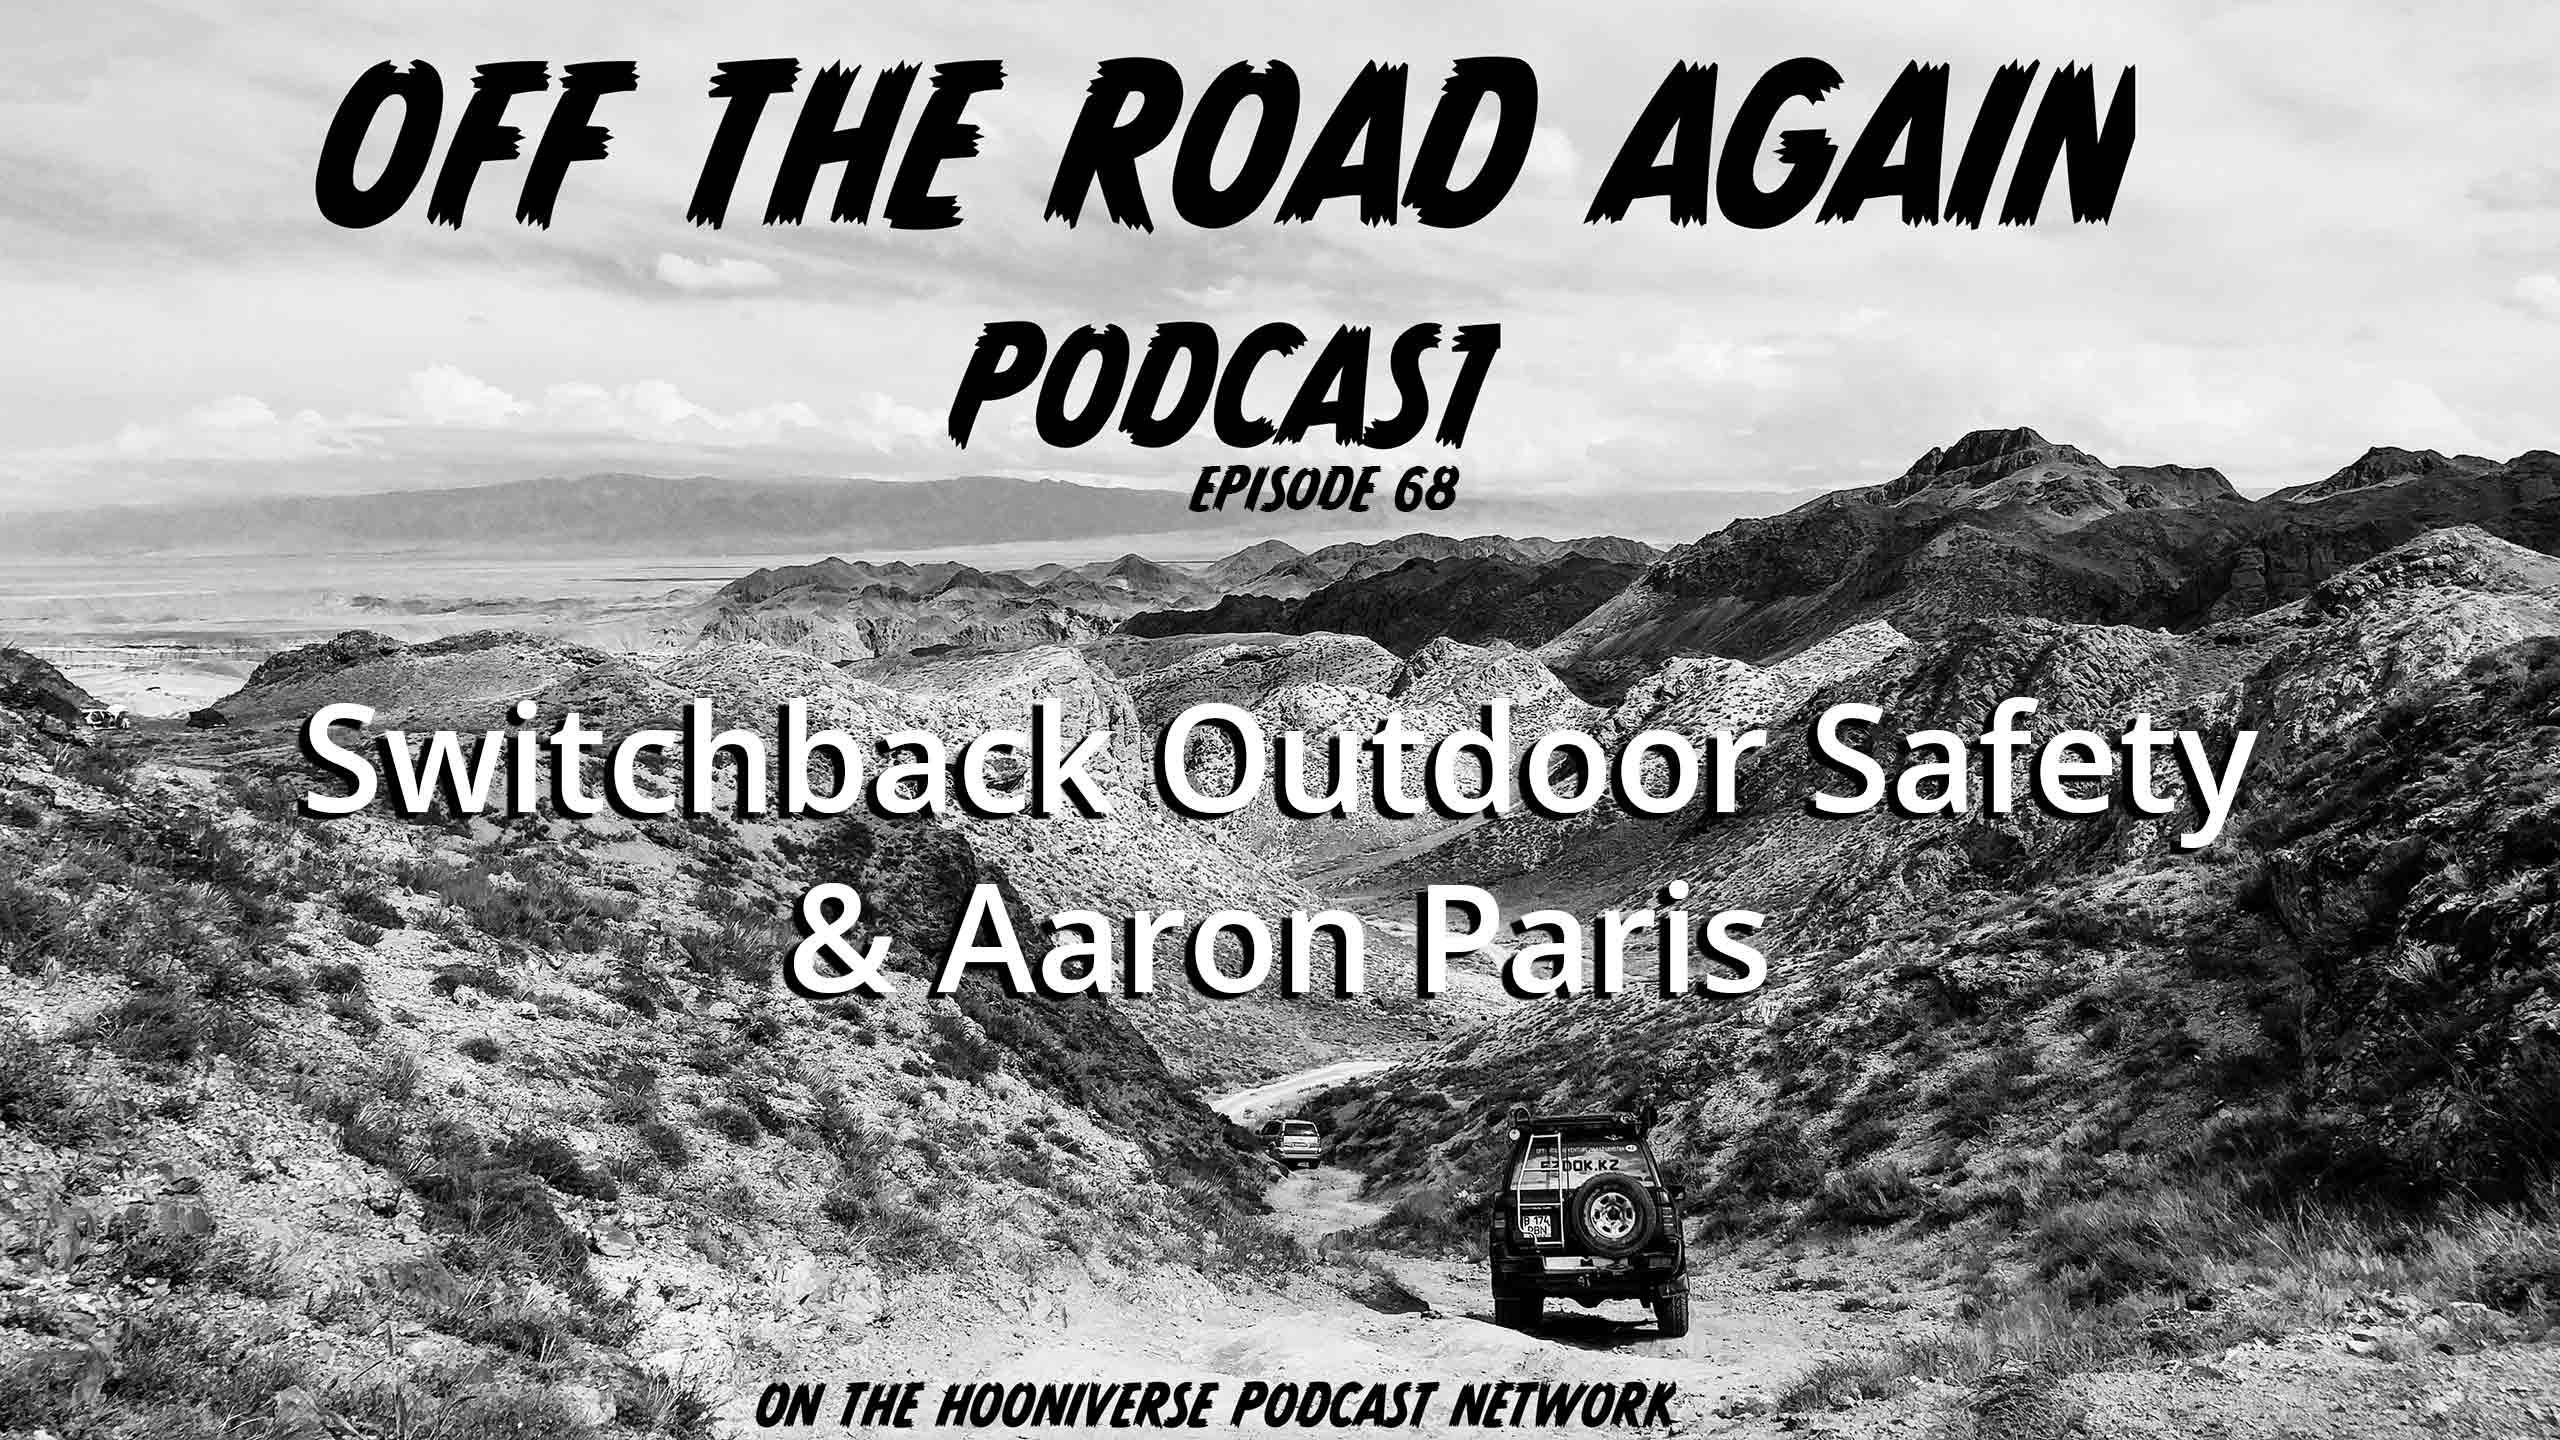 Switchback Outdoor Safety - Off The Road Again Podcast: Episode 68